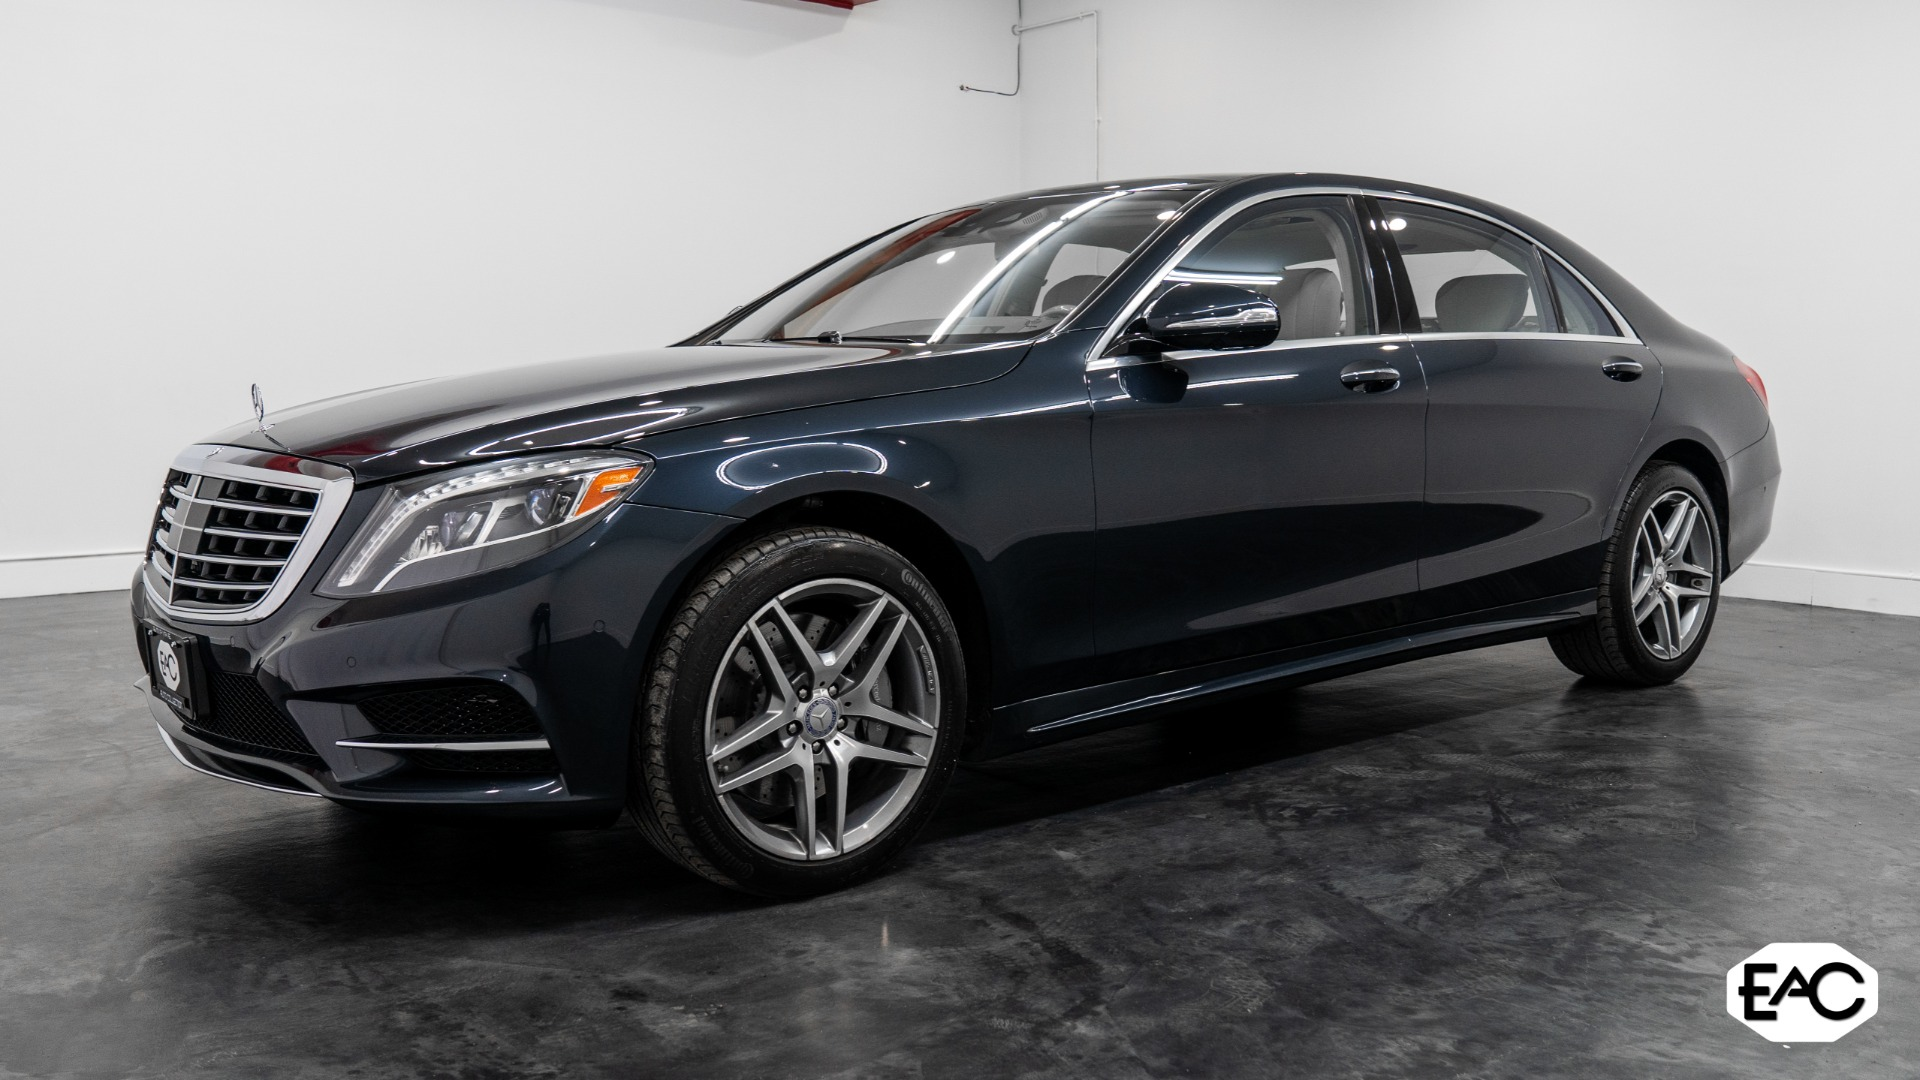 Used 2015 Mercedes-Benz S-Class S 550 4MATIC for sale $41,990 at Empire Auto Collection in Warren MI 48091 1